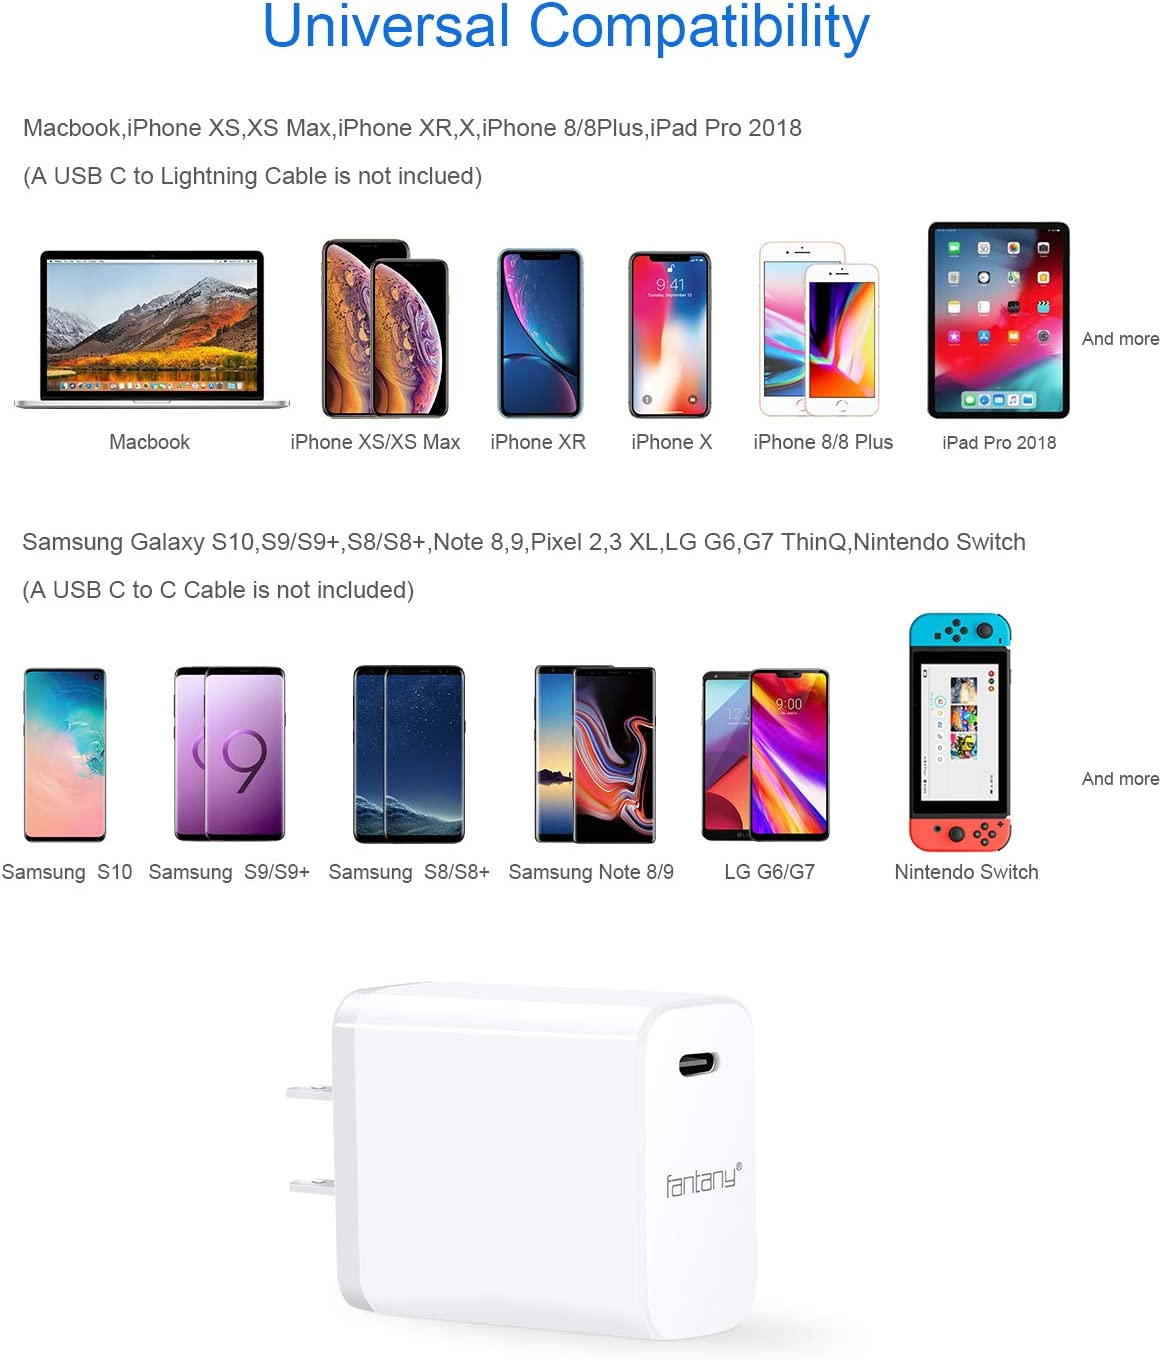 USB C Charger, UL Listed ,White Fantany 30W USB C PD 3.0 Wall Charger for iPhone 11,11 Pro,11 Pro Max,XS,XS Max,XR,X,8,8 Plus,iPad Pro,Galaxy S10+,S9,S8,Note 8,9,Pixel 2,3,4,LG,HTC NOT Included Cable